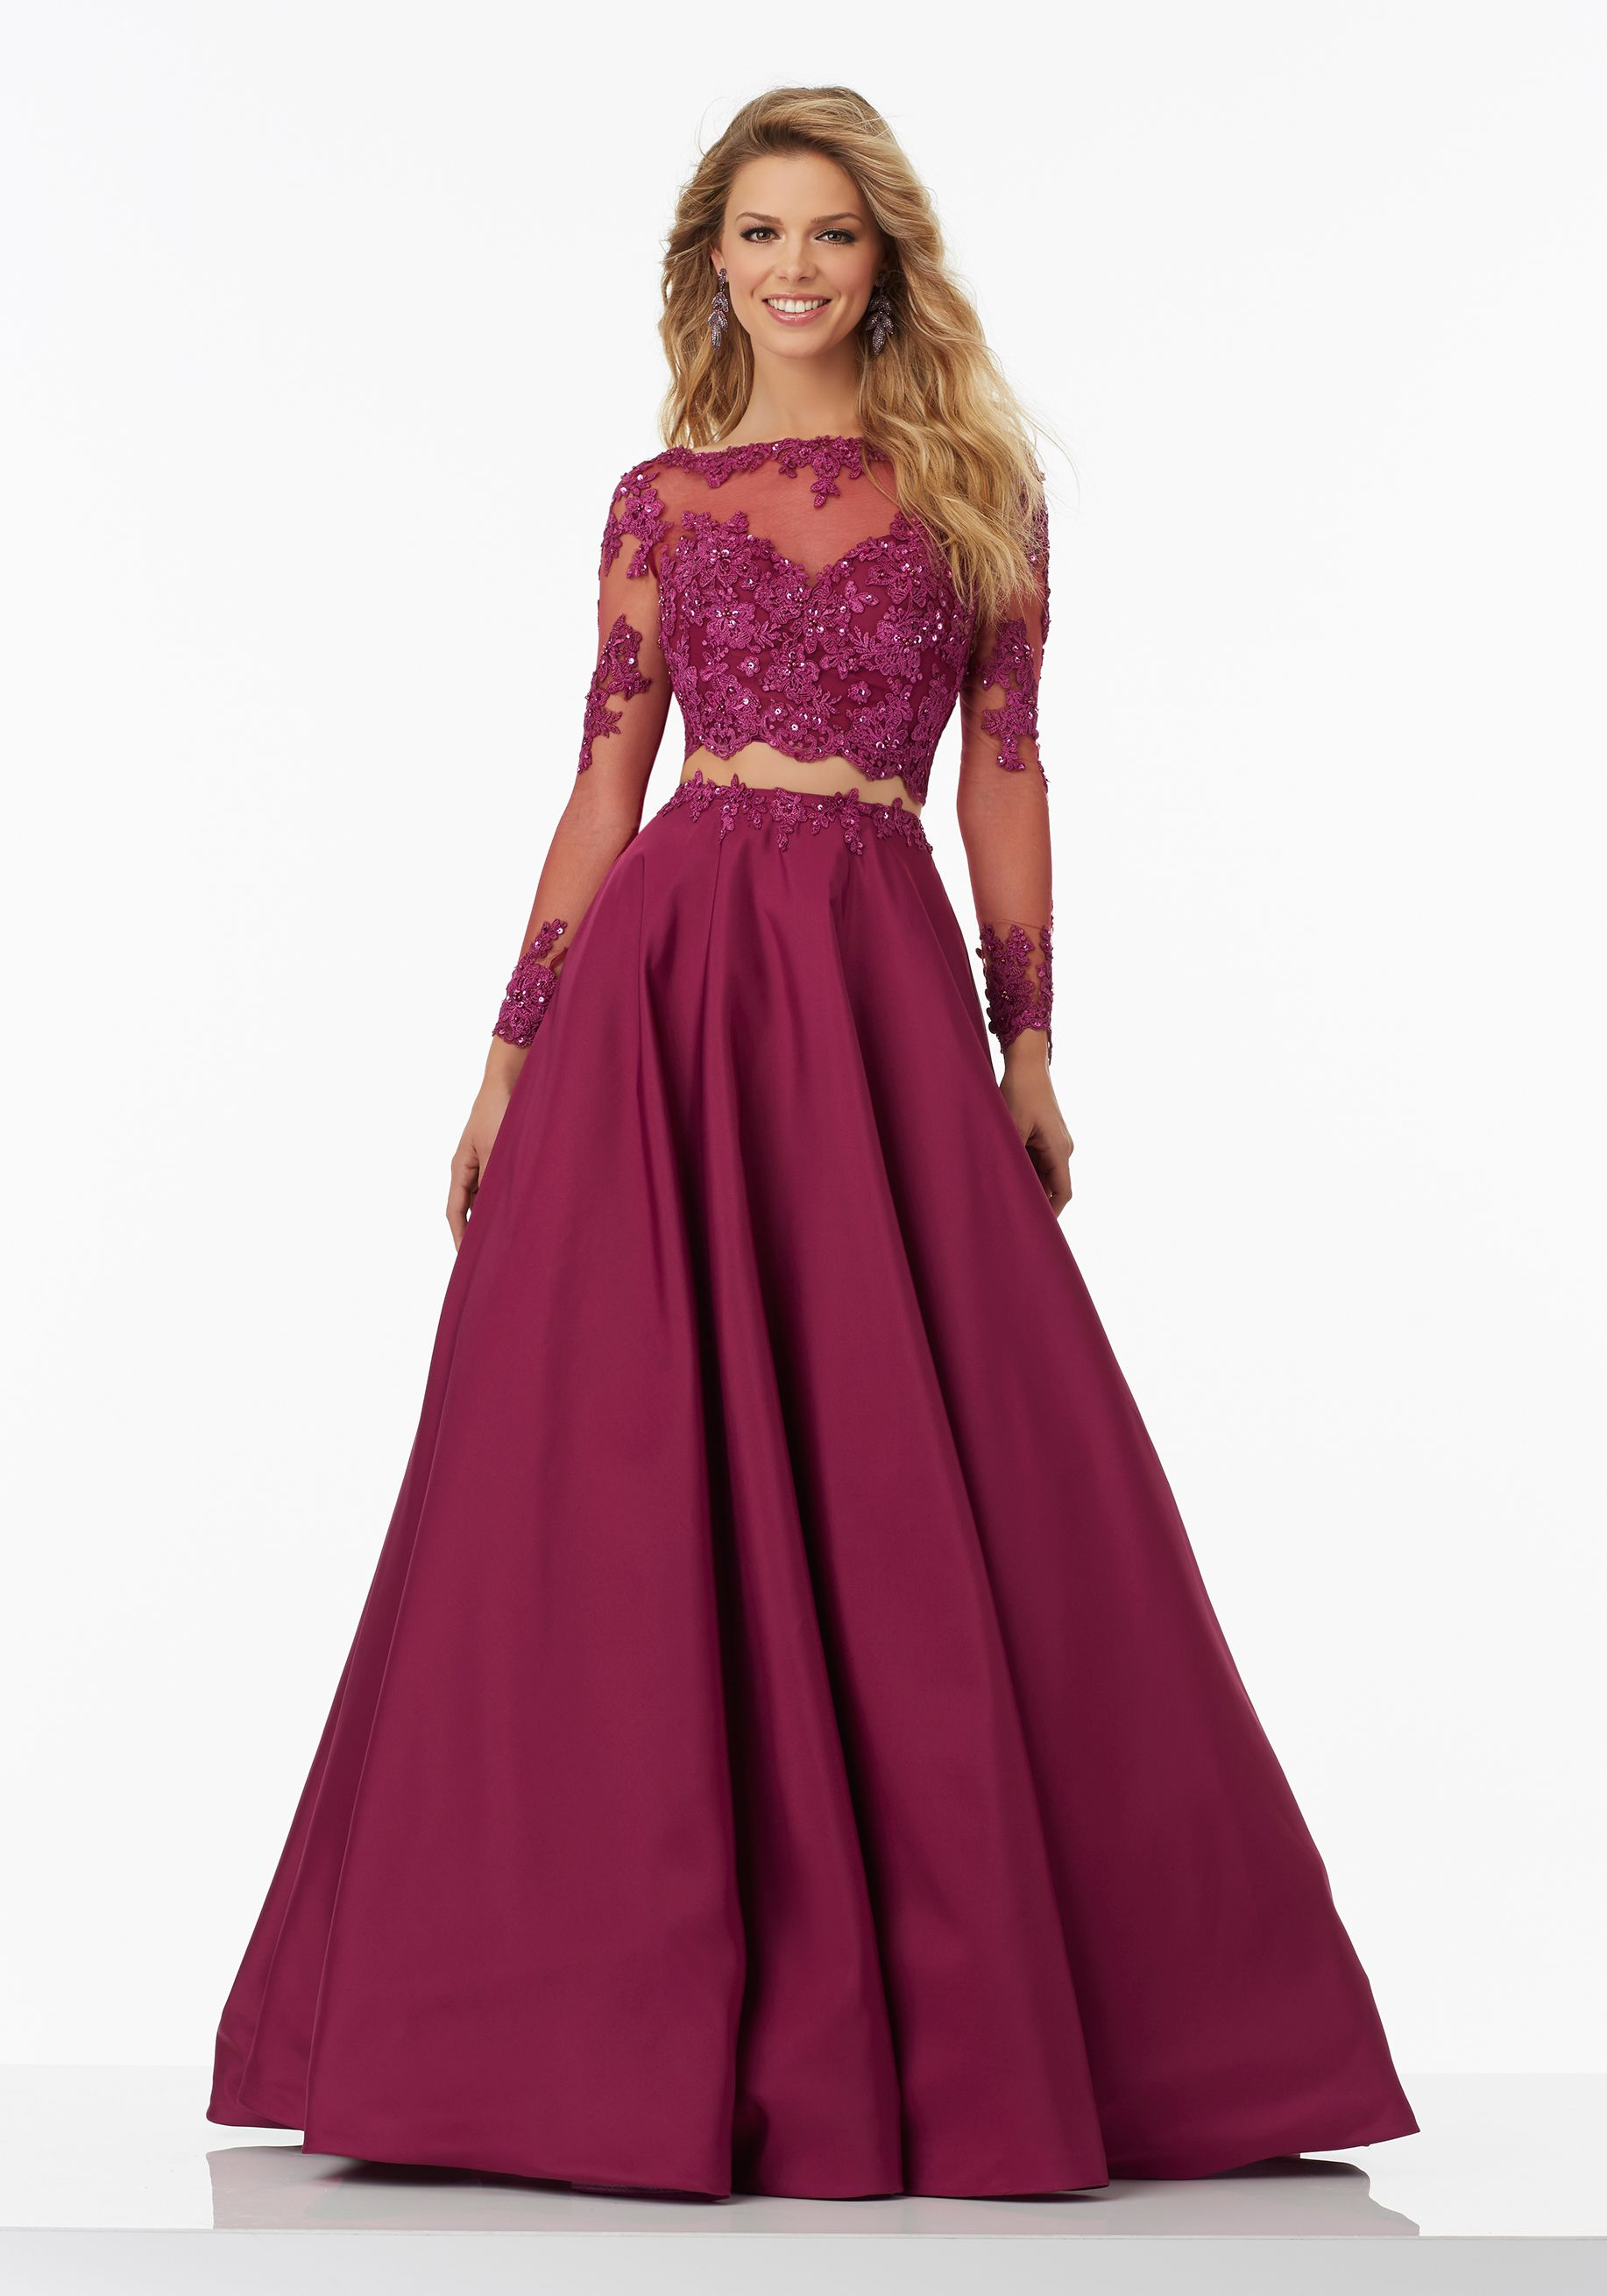 TwoPiece Prom Dress with Long Sleeved Lace on Net Top and Taffeta